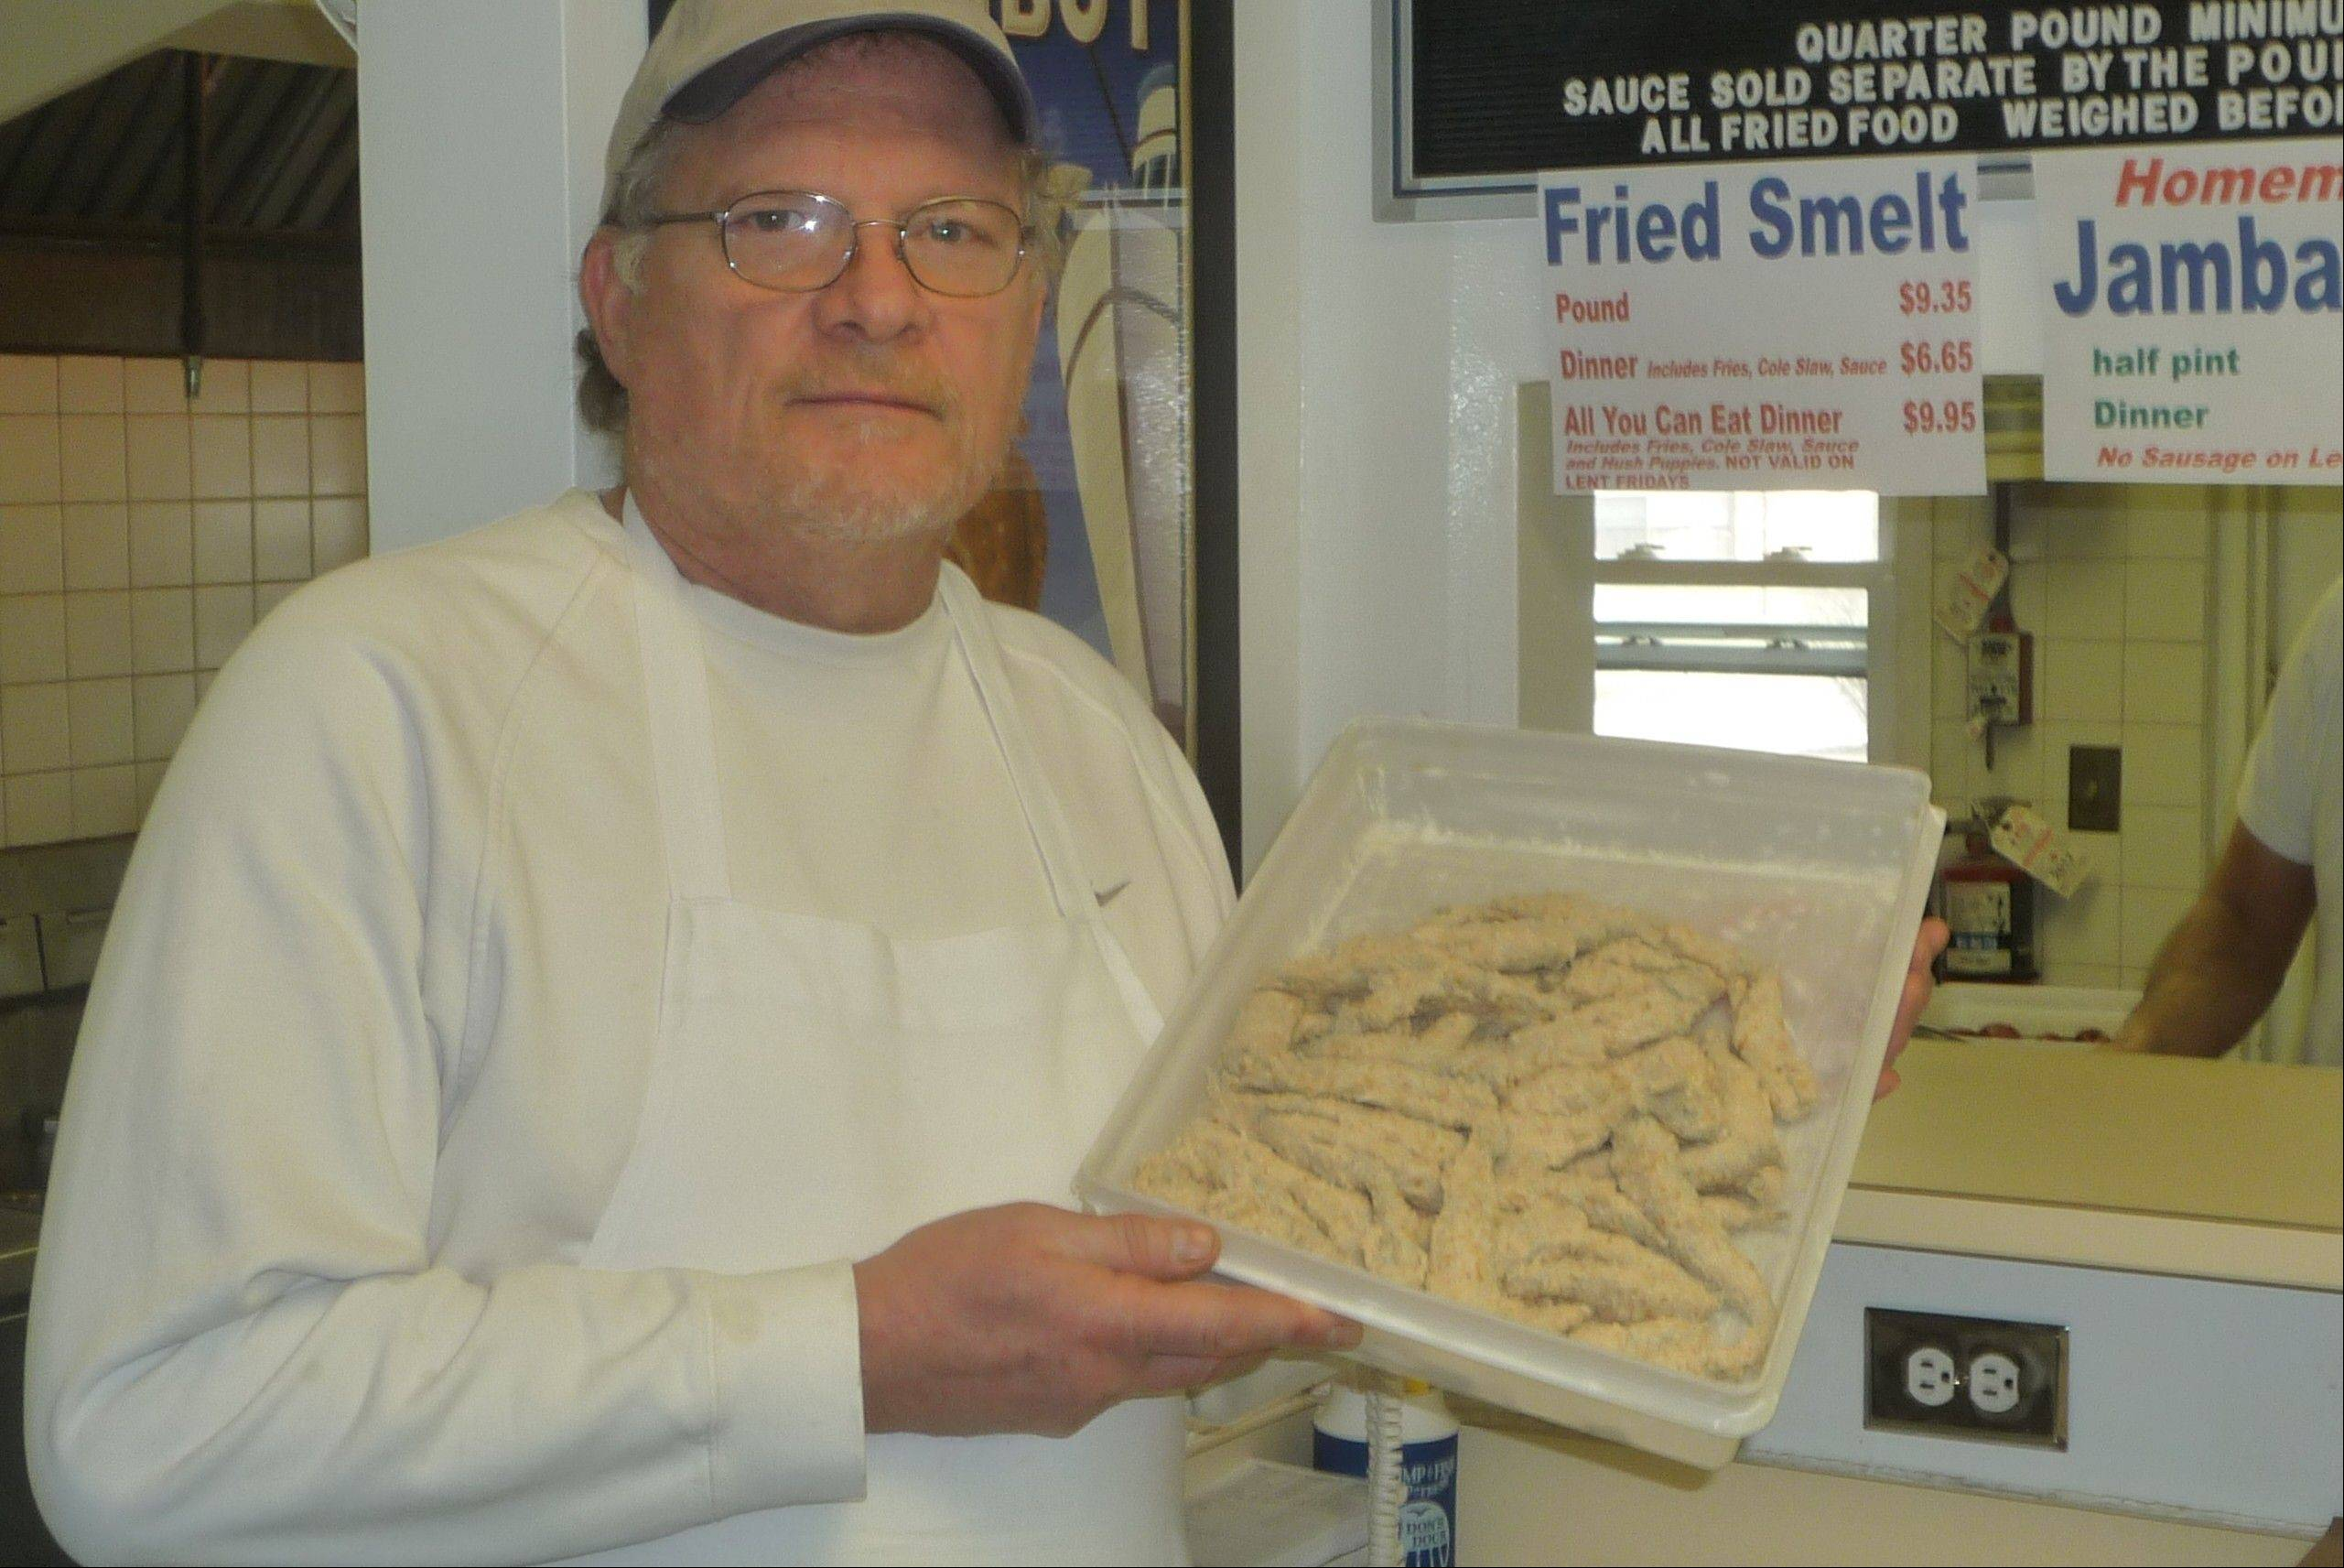 Considered a delicacy by some and a little gross by others, this pan full of smelt will be fried to perfection, promises Andy Johnson, who helps run the family's legendary Don's Dock seafood restaurant and market in Des Plaines.